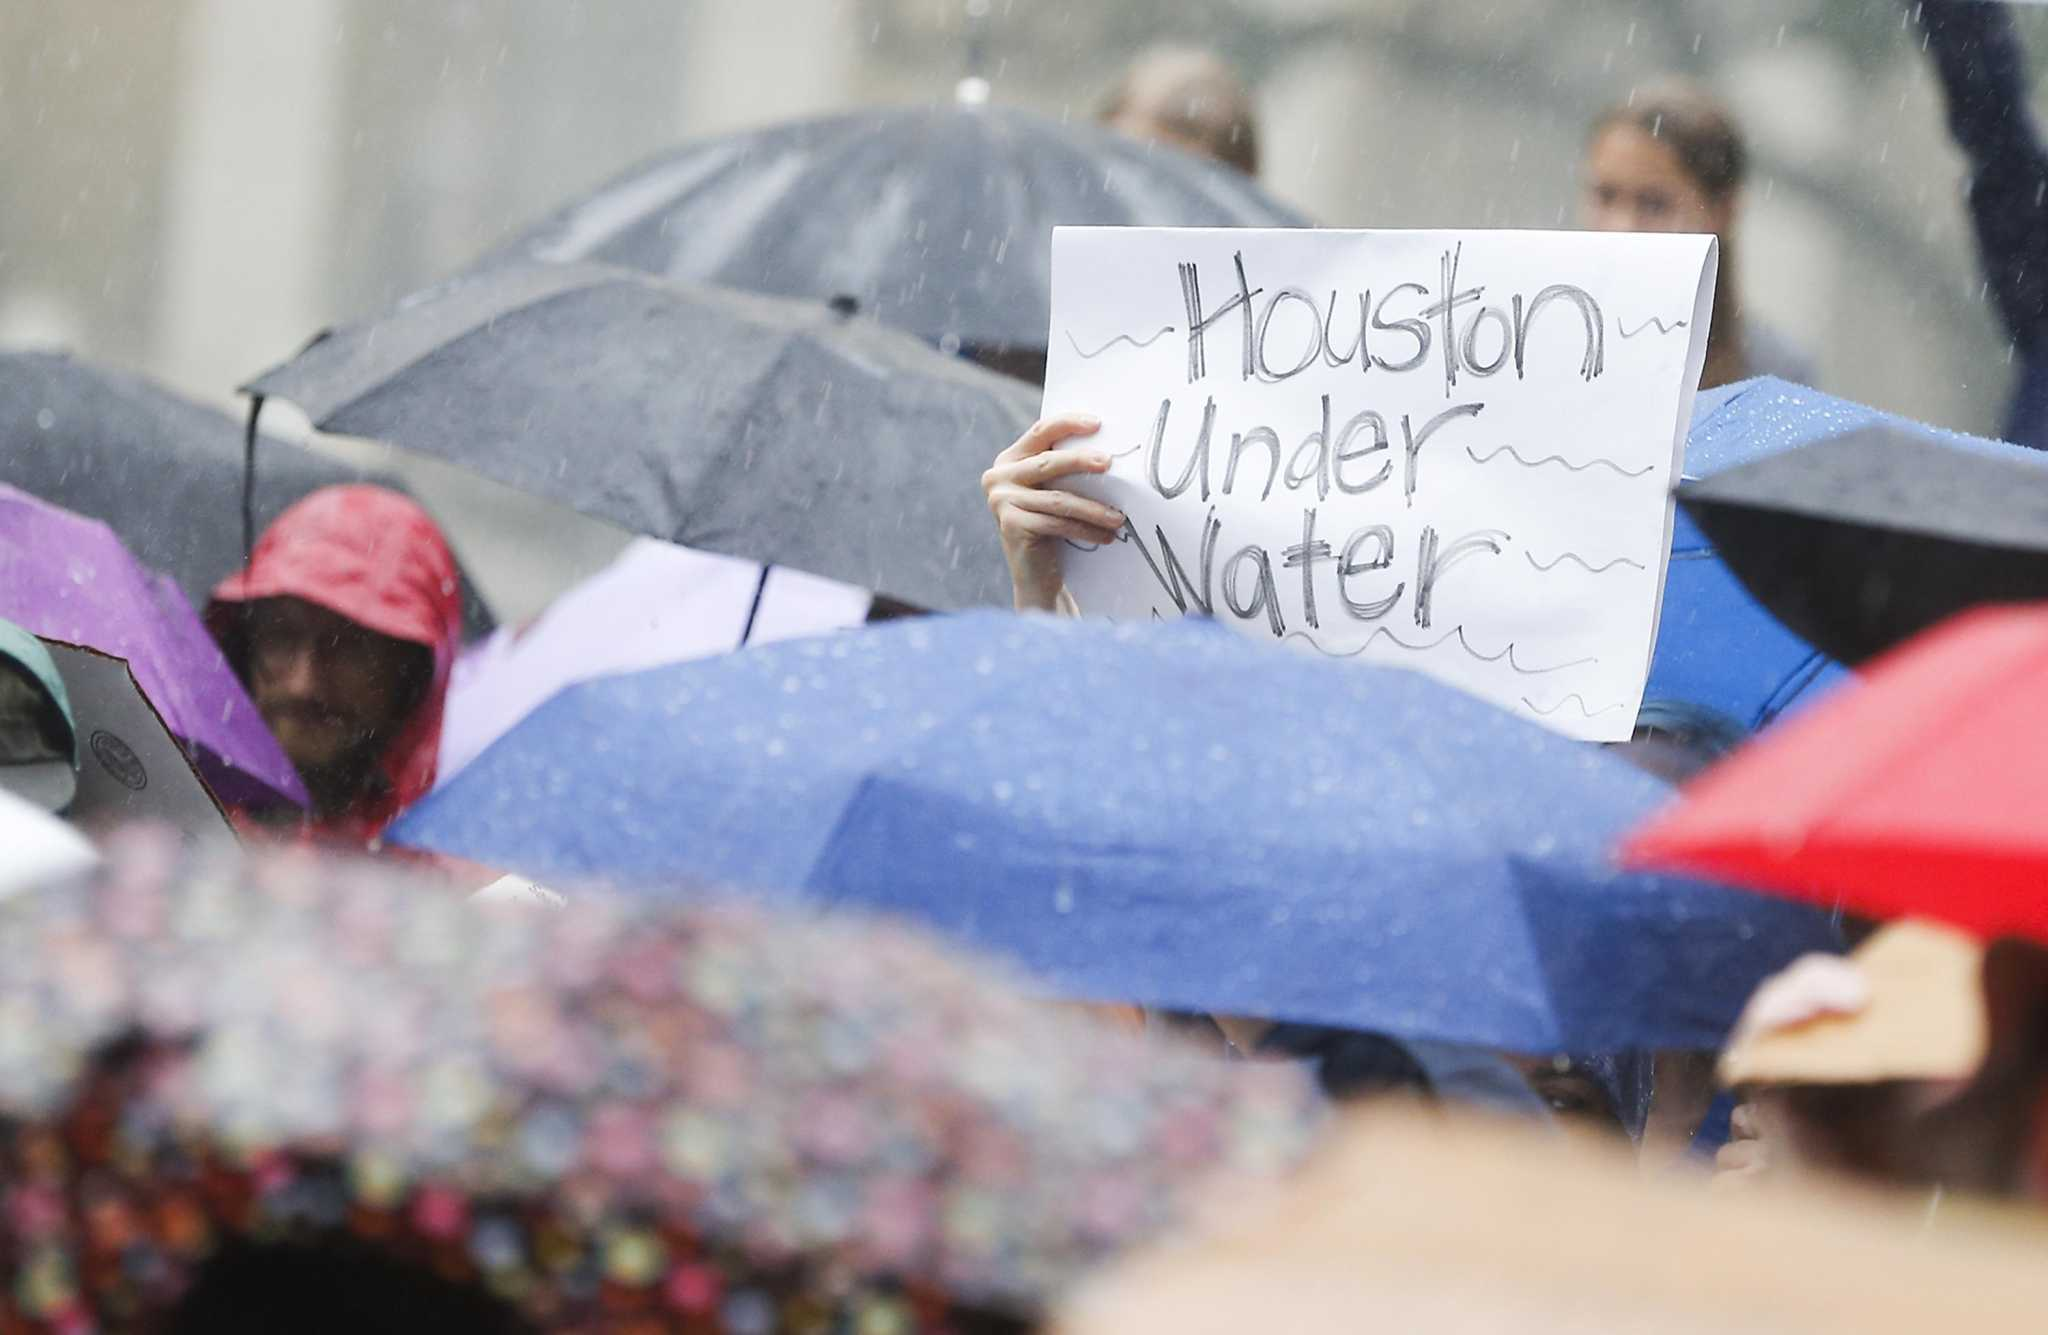 Houston to participate in global hackathon to address climate change